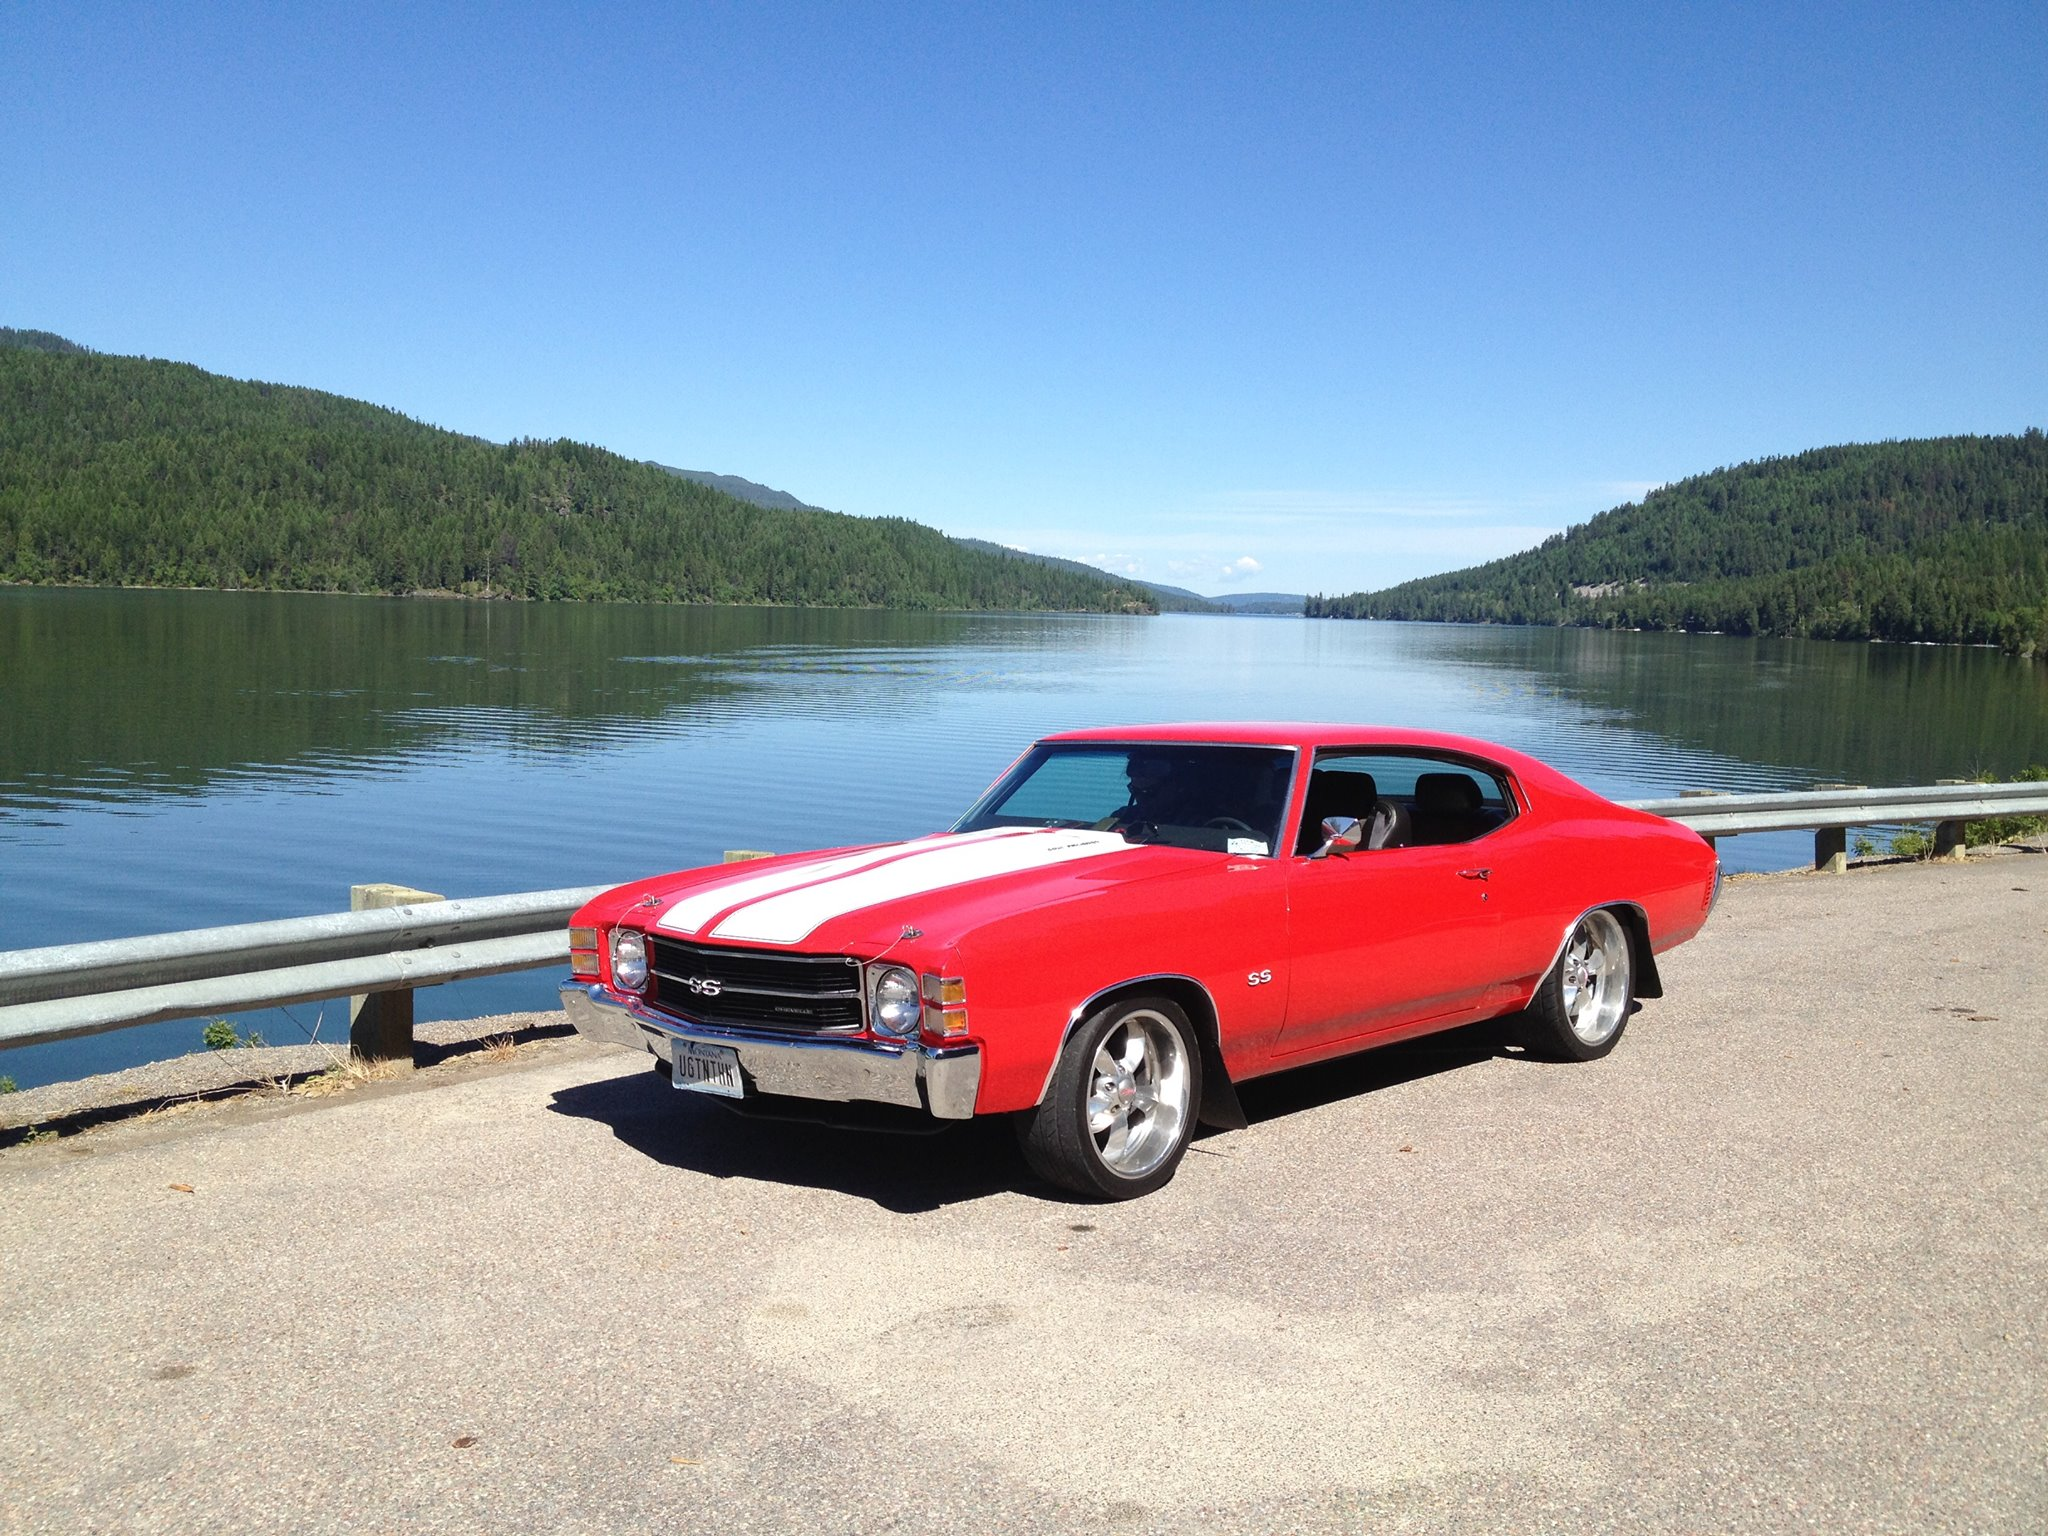 New Chevelle Ss >> Incentive Package: Shaun Carnahan's 1971 Chevy Chevelle SS - OnAllCylinders